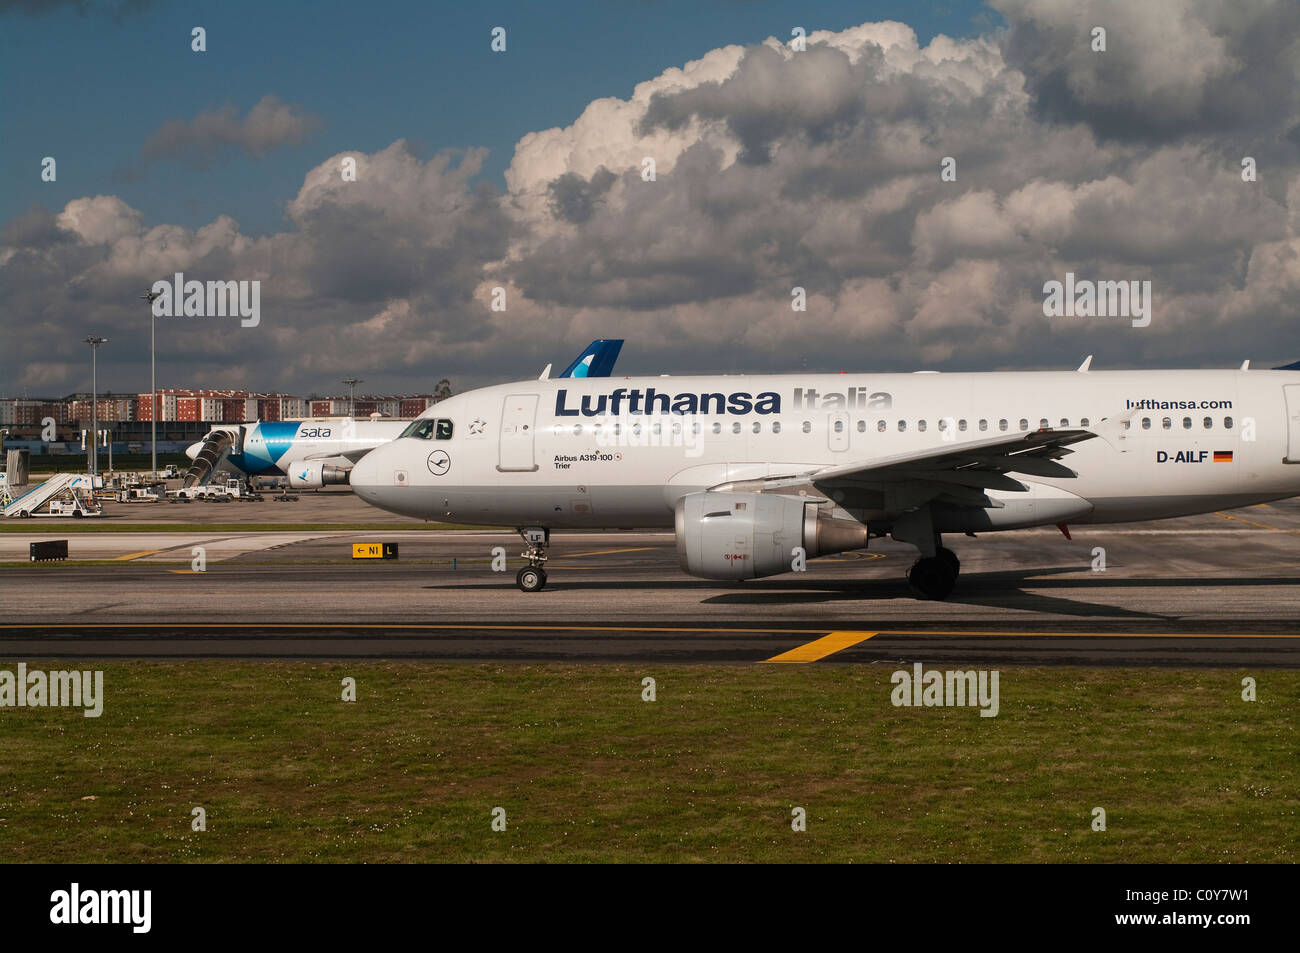 Lufthansa airplane moving into position on the runway for take off - Stock Image